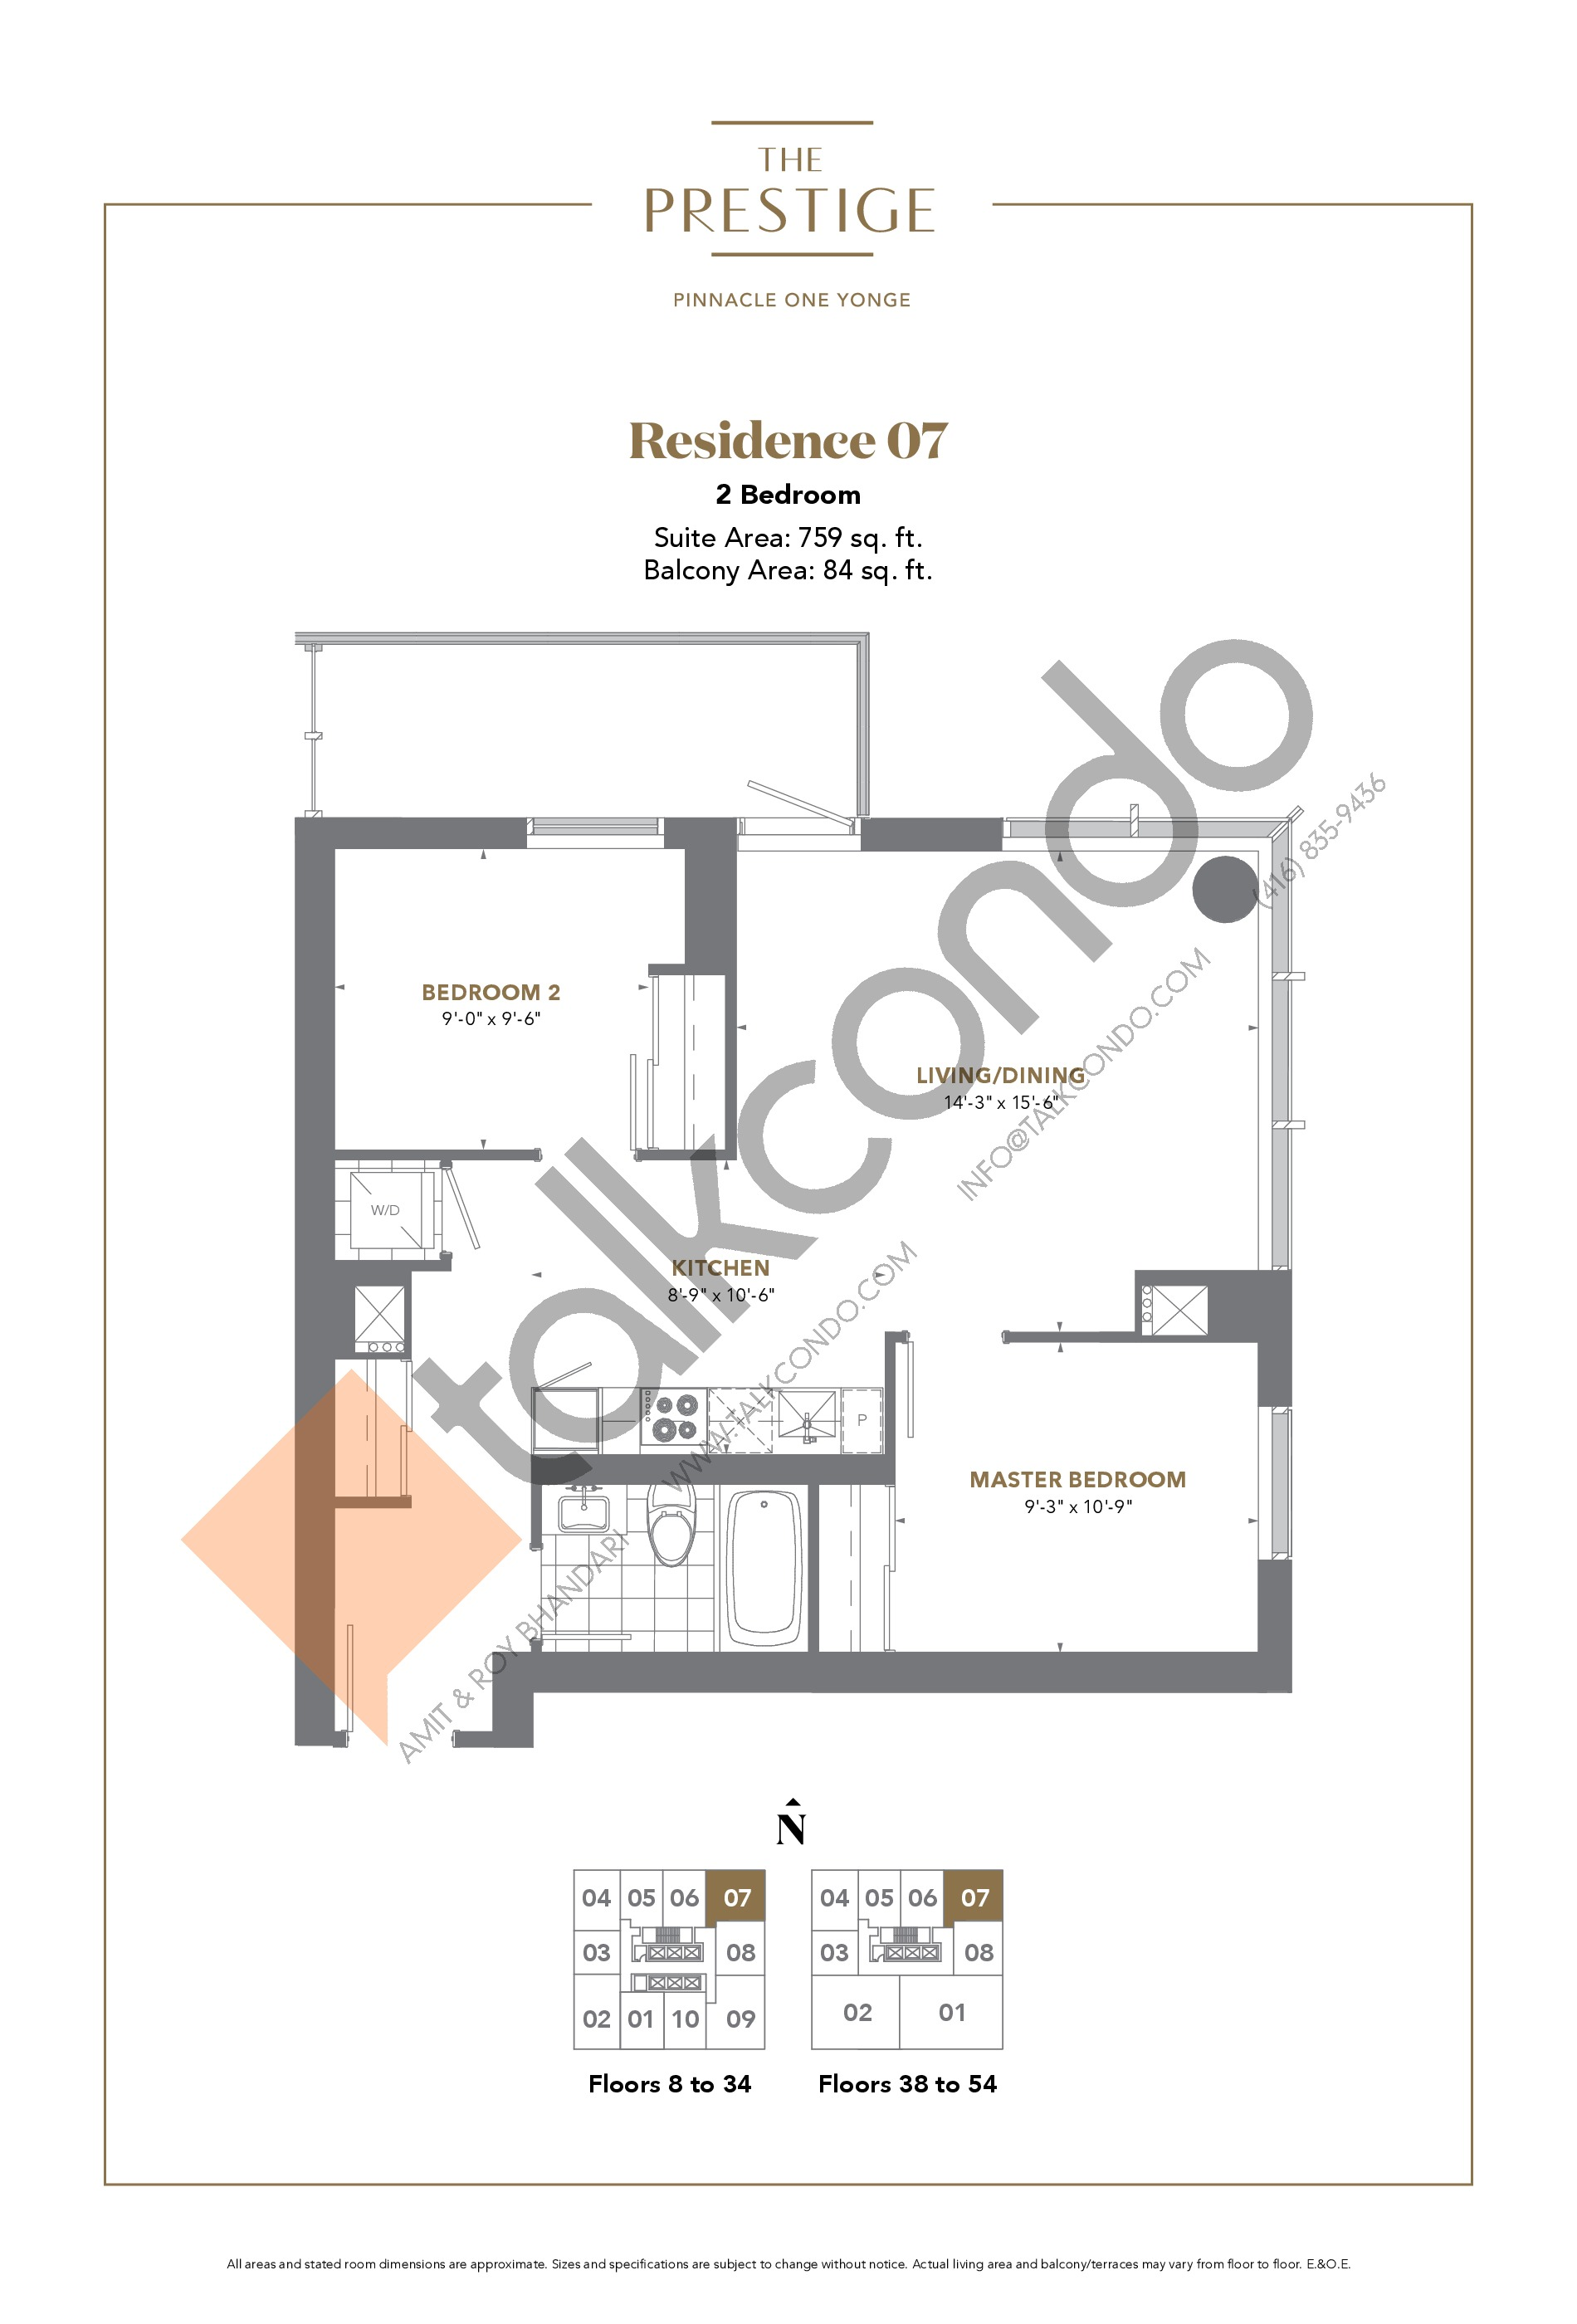 Residence 07 Floor Plan at The Prestige Condos at Pinnacle One Yonge - 759 sq.ft